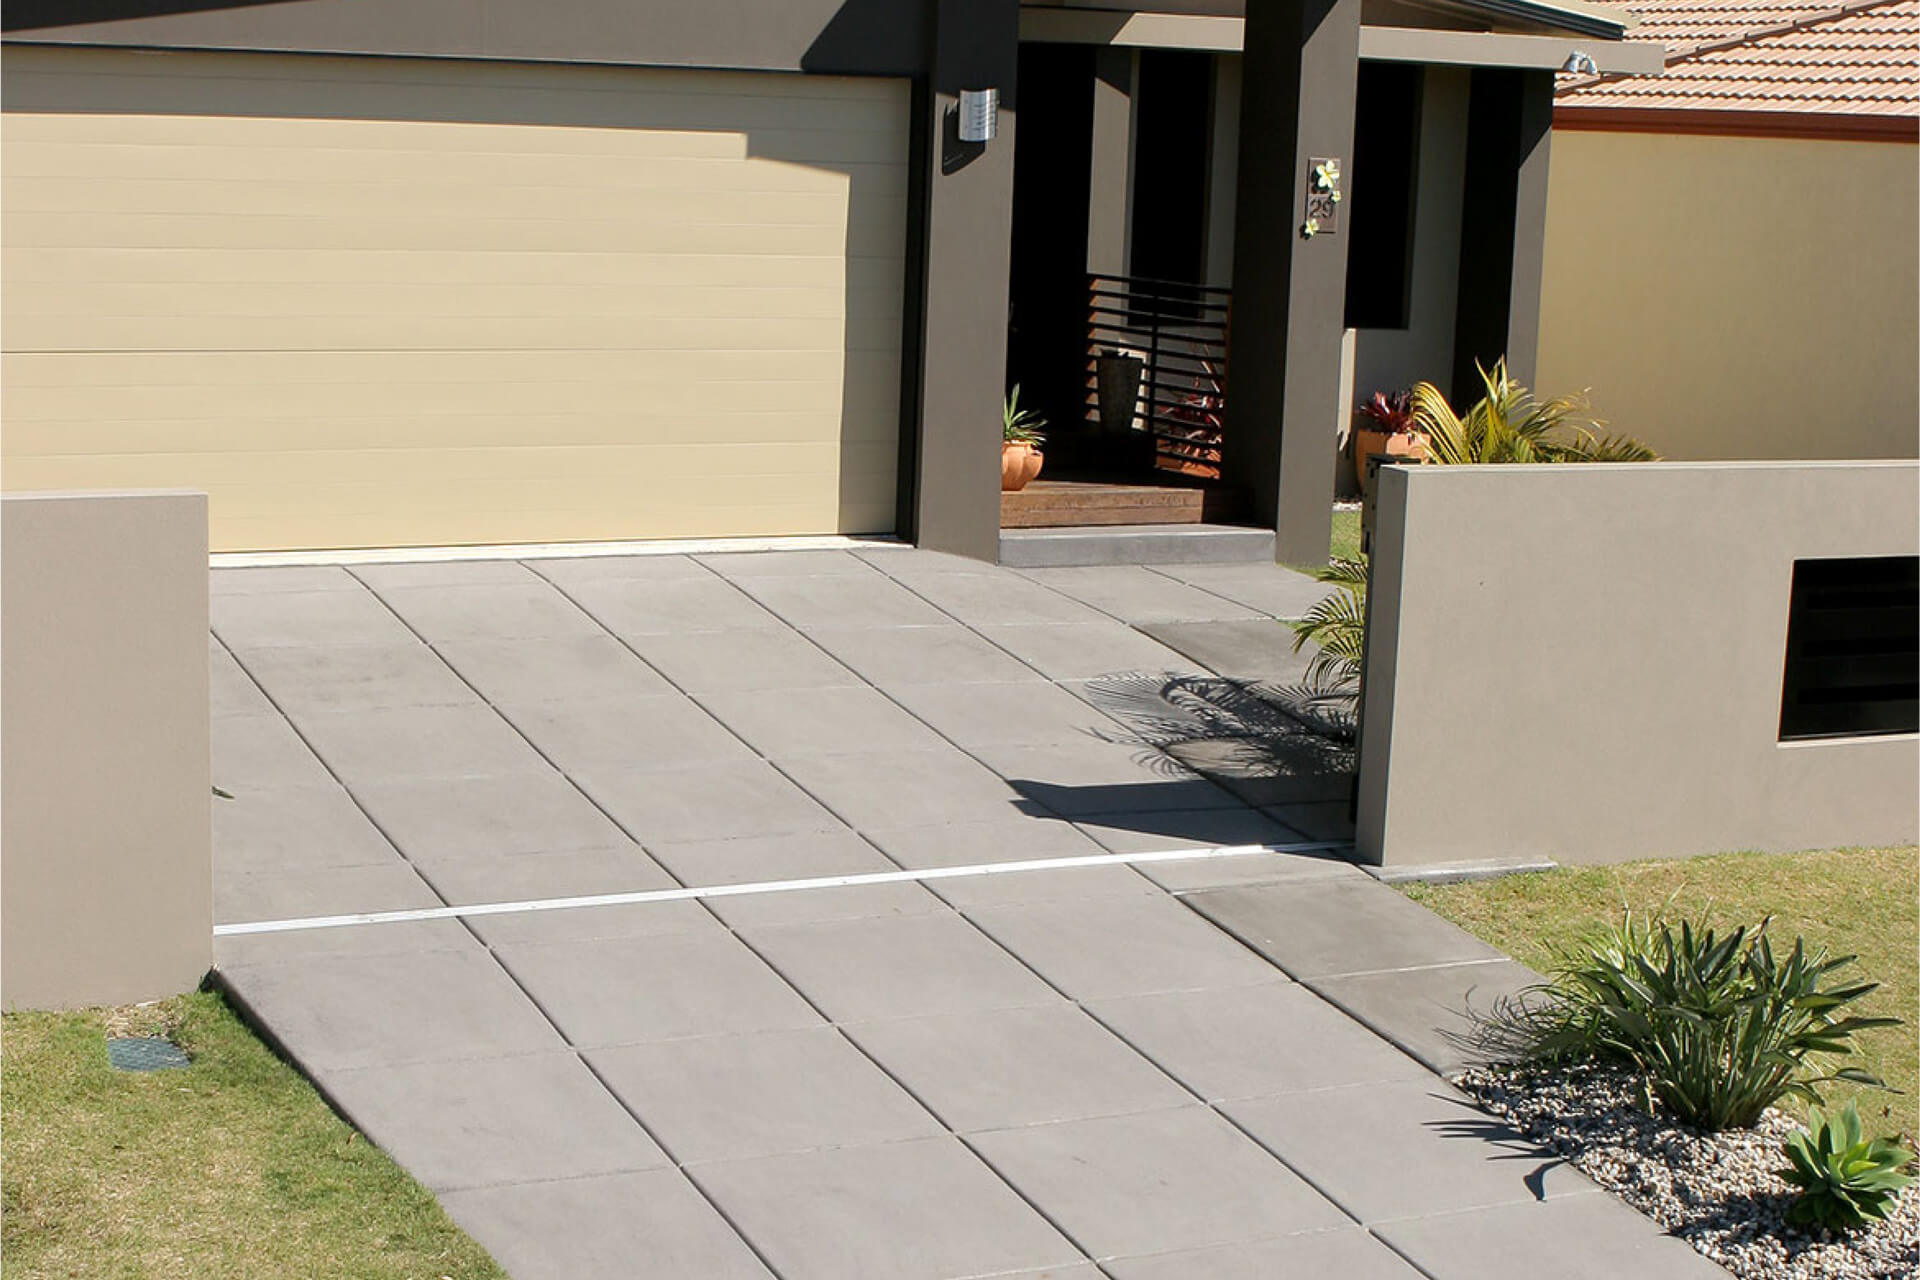 Residential driveway project using CCS Walnut with saw cuts or grooved lines